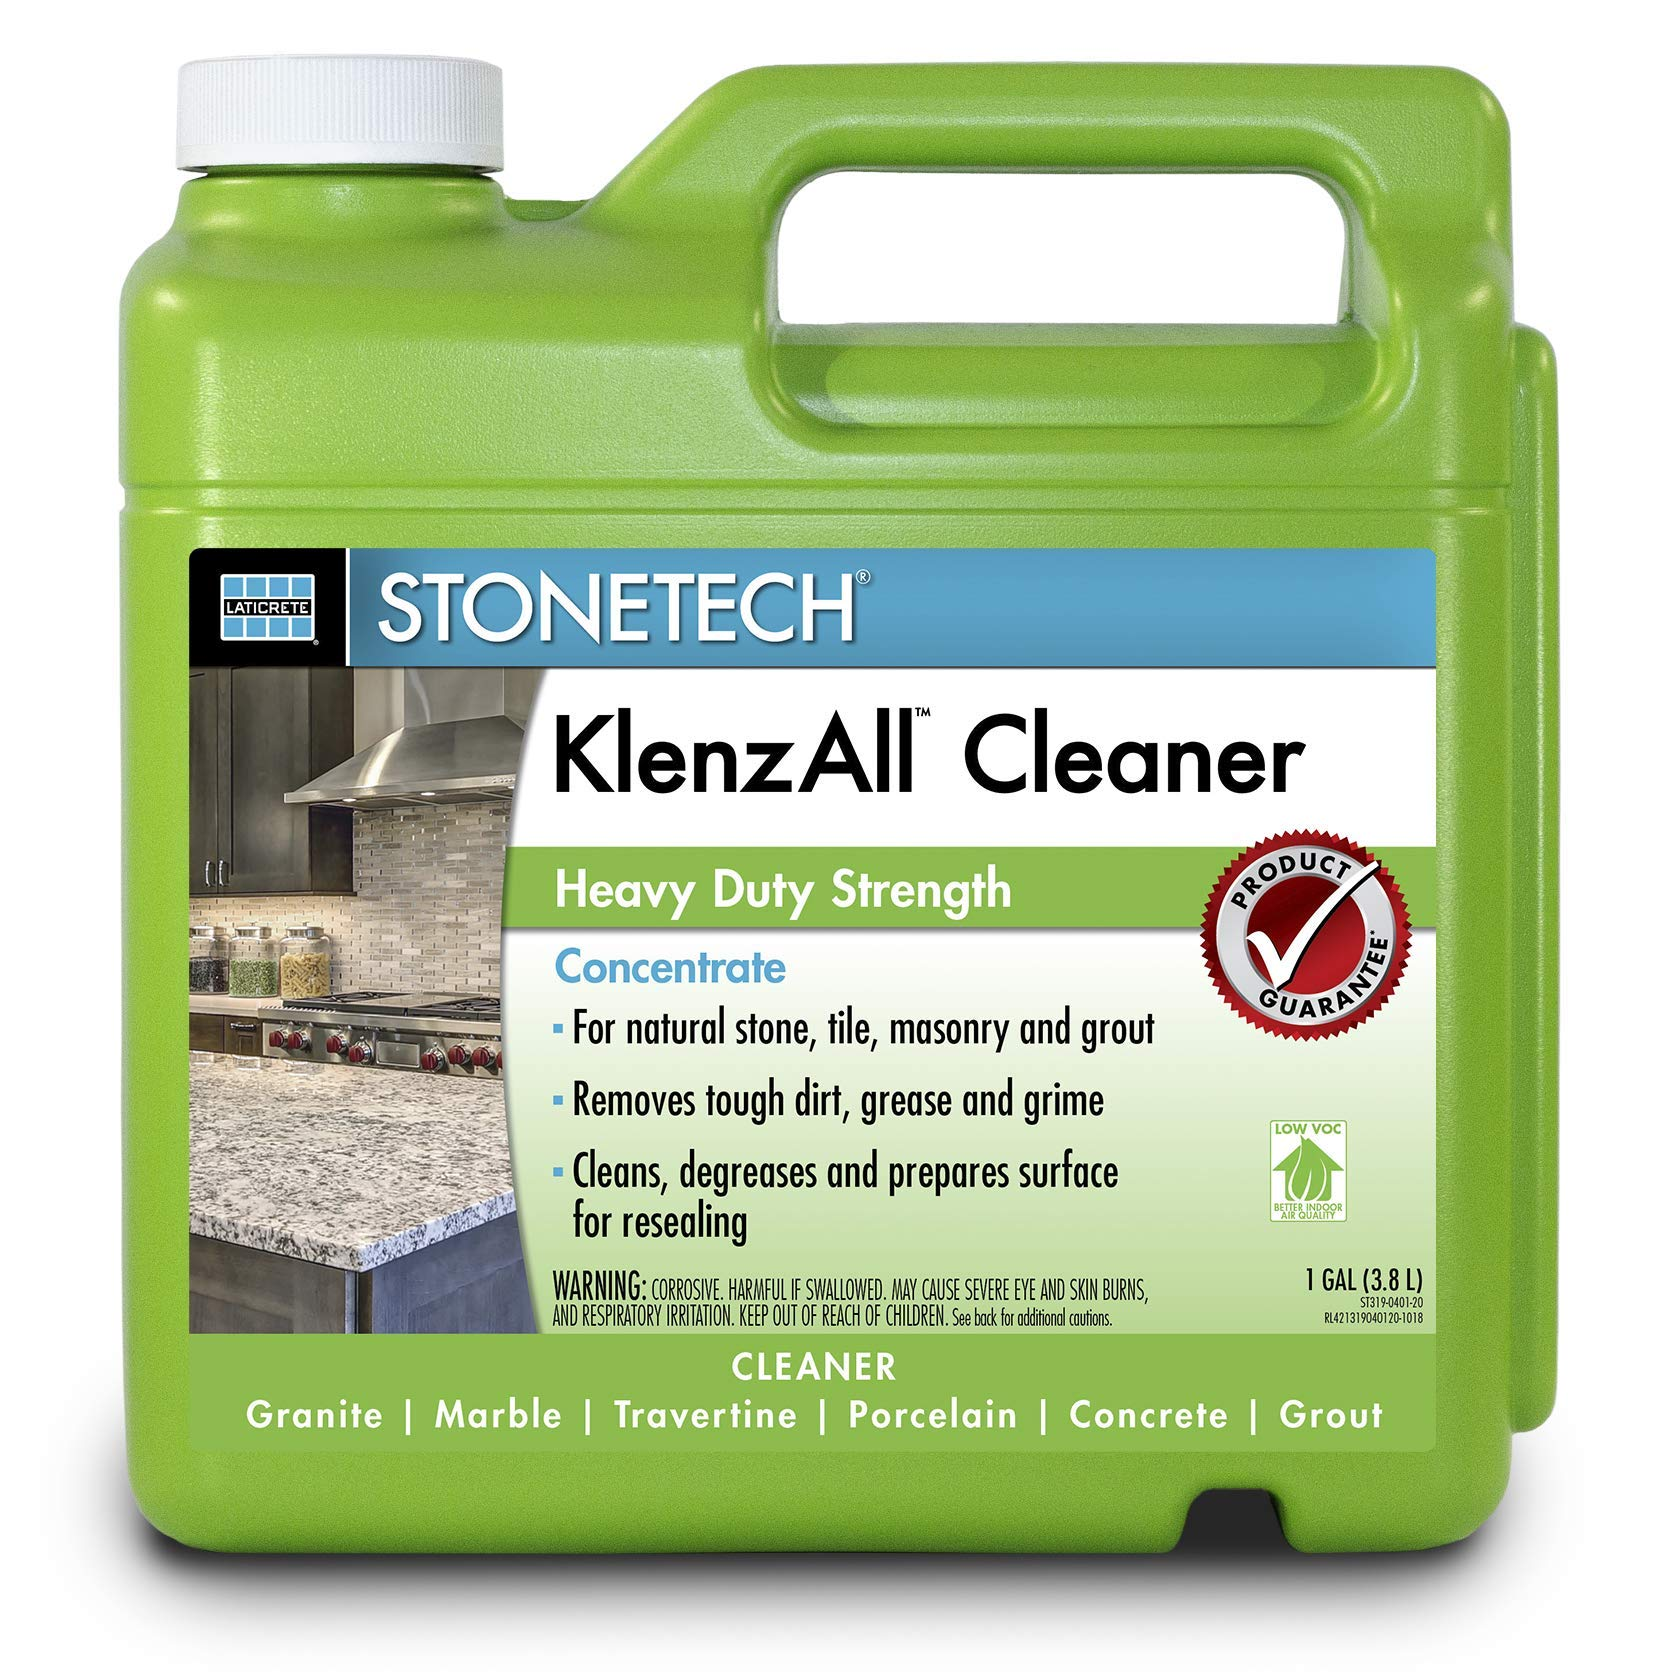 StoneTech KlenzAll, Heavy Duty Cleaner for Stone & Tile, 1-Gallon (3.785L) by StoneTech